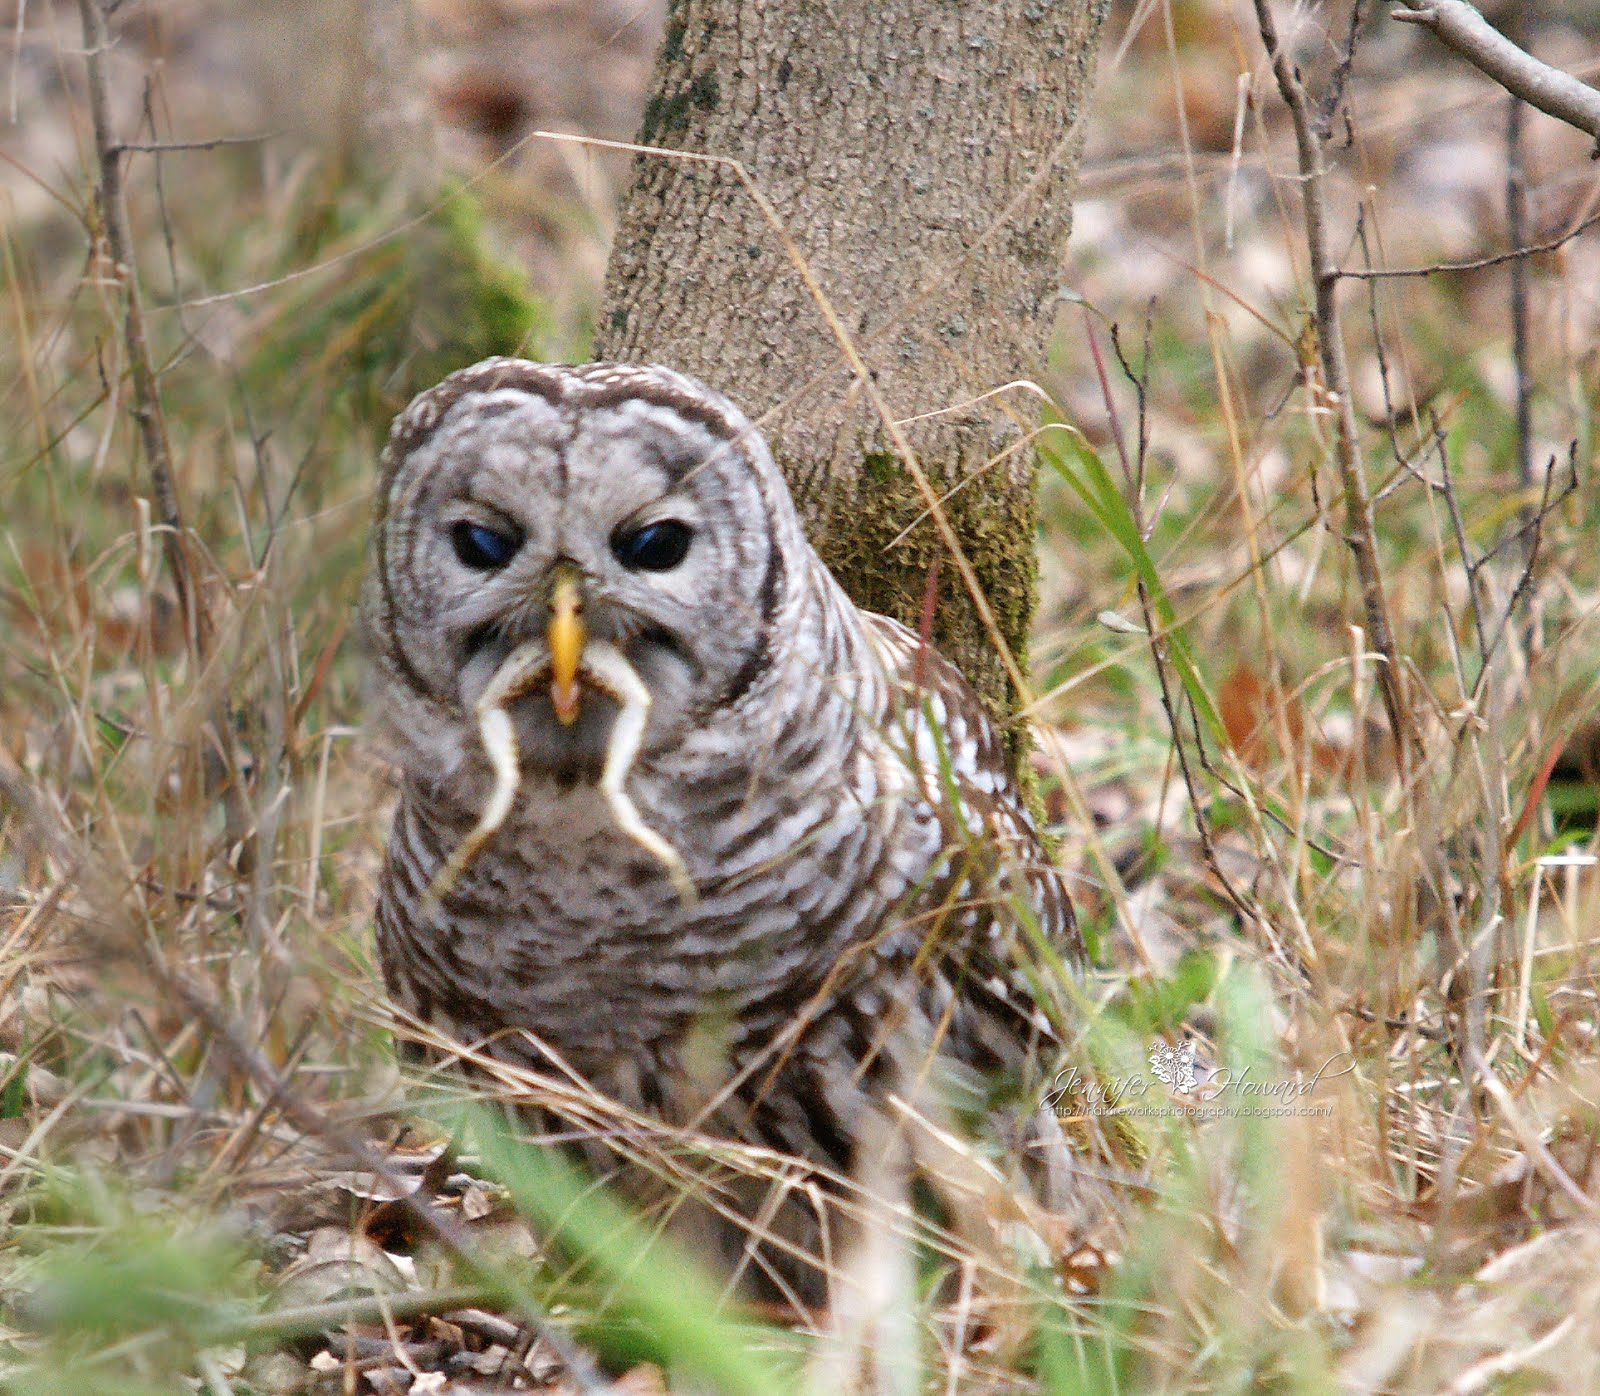 Barred Owl wallpapers, Animal, HQ Barred Owl pictures | 4K